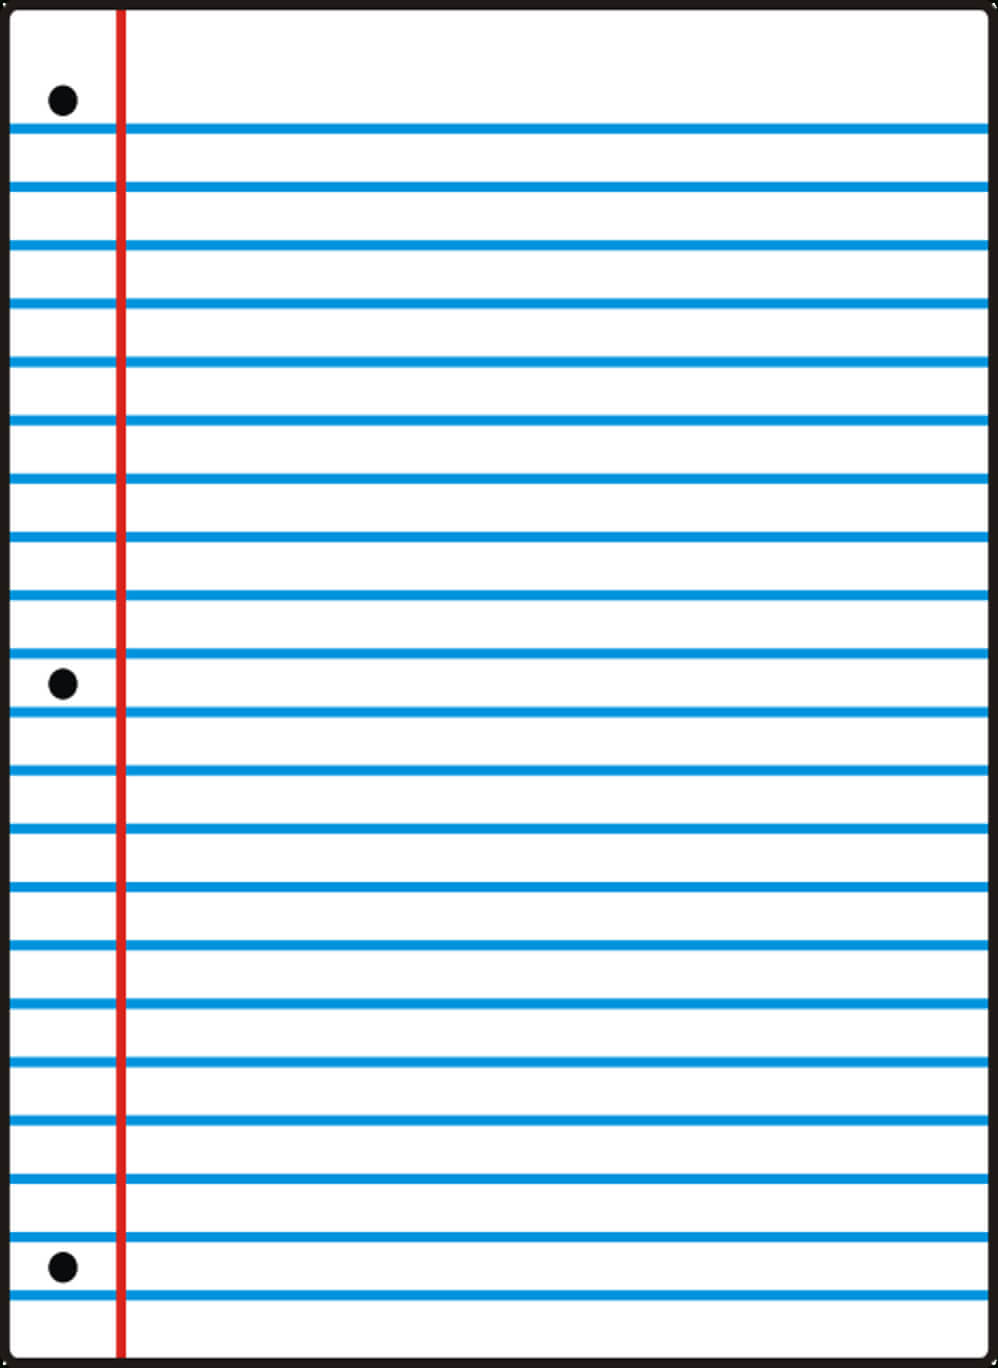 Notebook Paper Template For Word - Clip Art Library Intended For Notebook Paper Template For Word